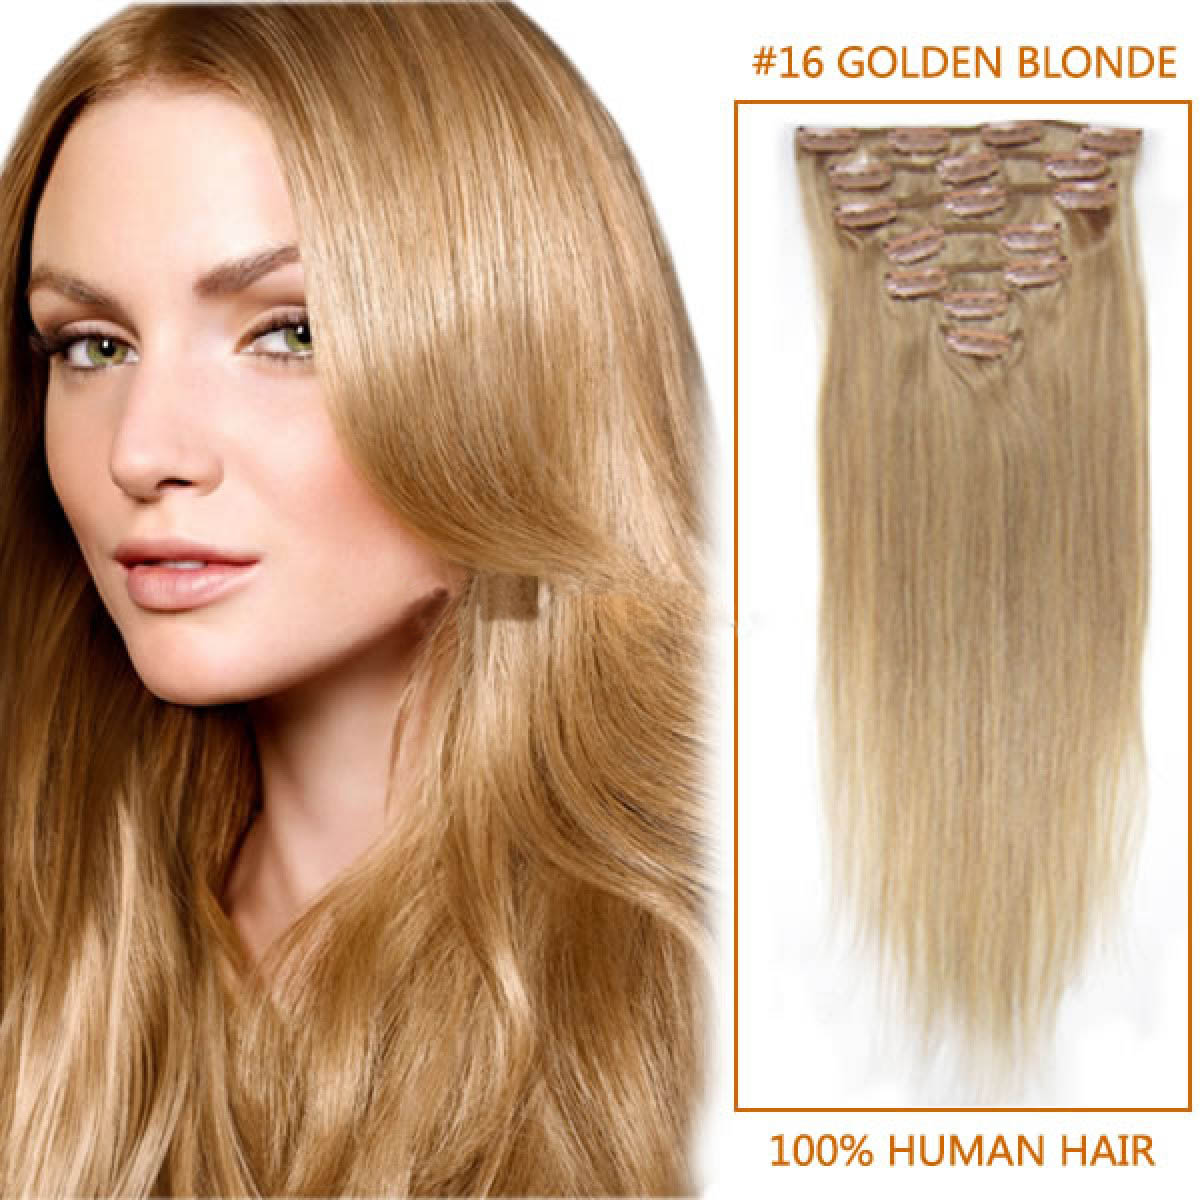 Inch 16 golden blonde clip in human hair extensions 12pcs 15 inch 16 golden blonde clip in human hair extensions 12pcs pmusecretfo Image collections